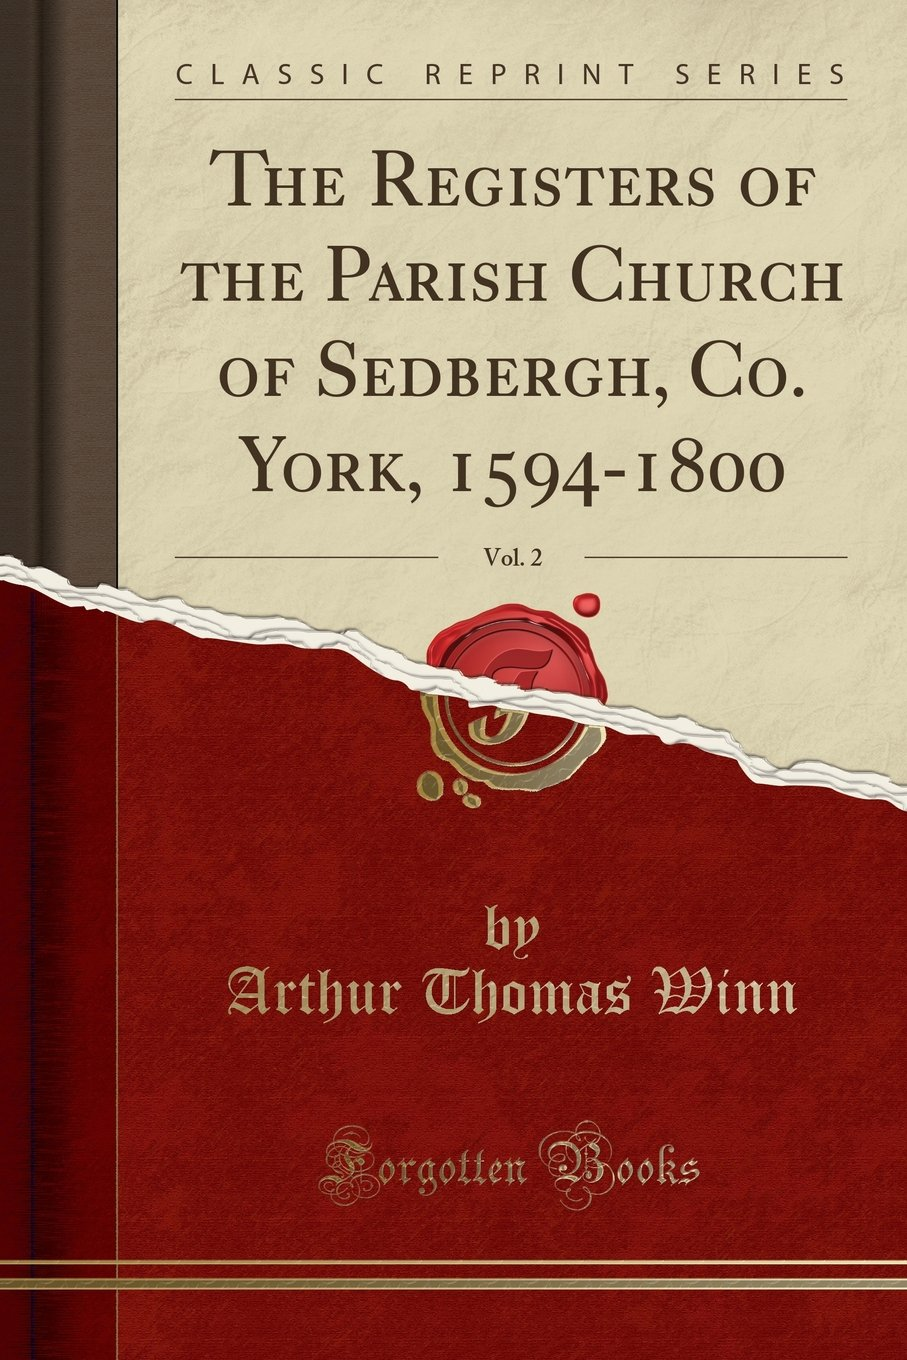 Read Online The Registers of the Parish Church of Sedbergh, Co. York, 1594-1800, Vol. 2 (Classic Reprint) ebook